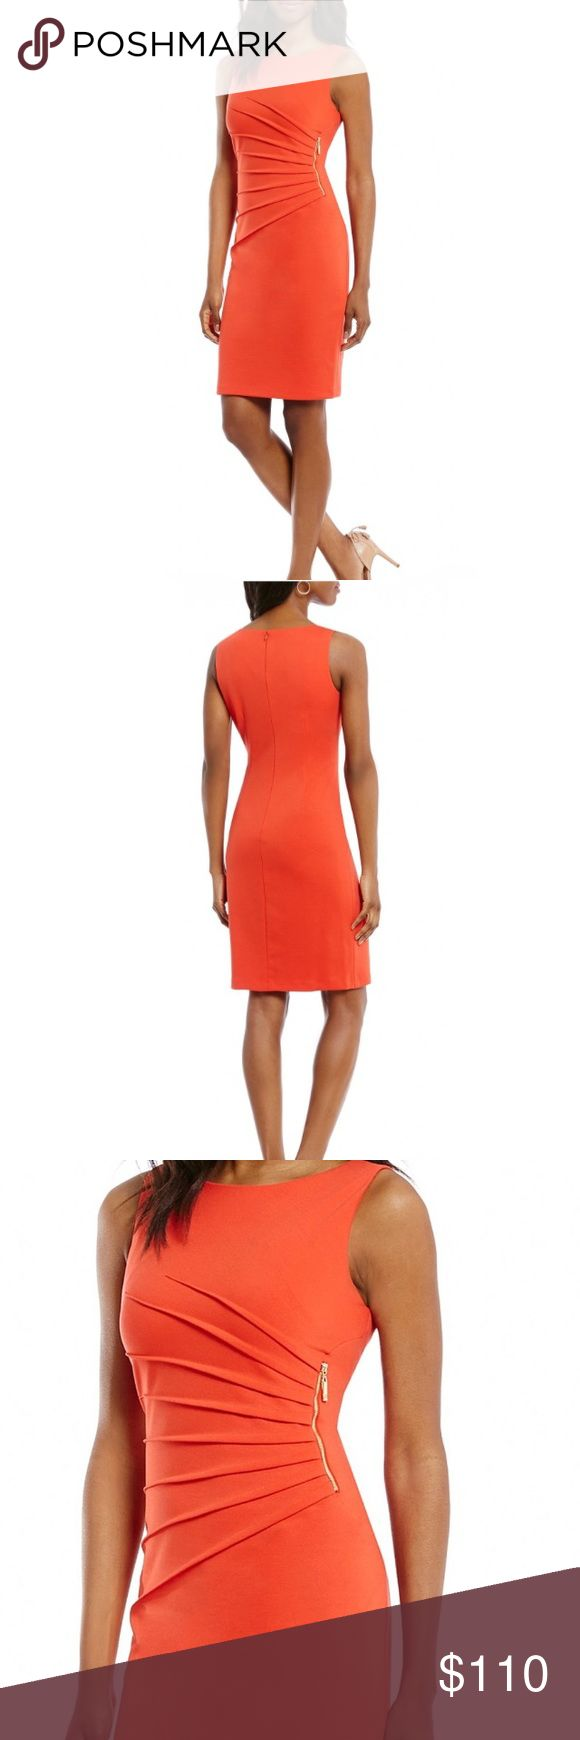 "Ivanka Trumpe ORANGE Dress NEW EASTER DRESSIvanka Trump ORANGE Dress NEW. The Color here is ""Strawberry"" (Orange)❤️BRAND NEW. NEVER WORN MSRP $140. Absolutely stunning dress.  Has gold front side zipper-its nice.Soft material.  Pics do not capture how pretty it truly is. This color looks especially AMAZING w a TAN&tan heels---I will post pics of actual dress(es) upon req or asap Ty 4looking.  I'm looking for other sizes as well but hard to find. You are welcome to make an offer. I am…"